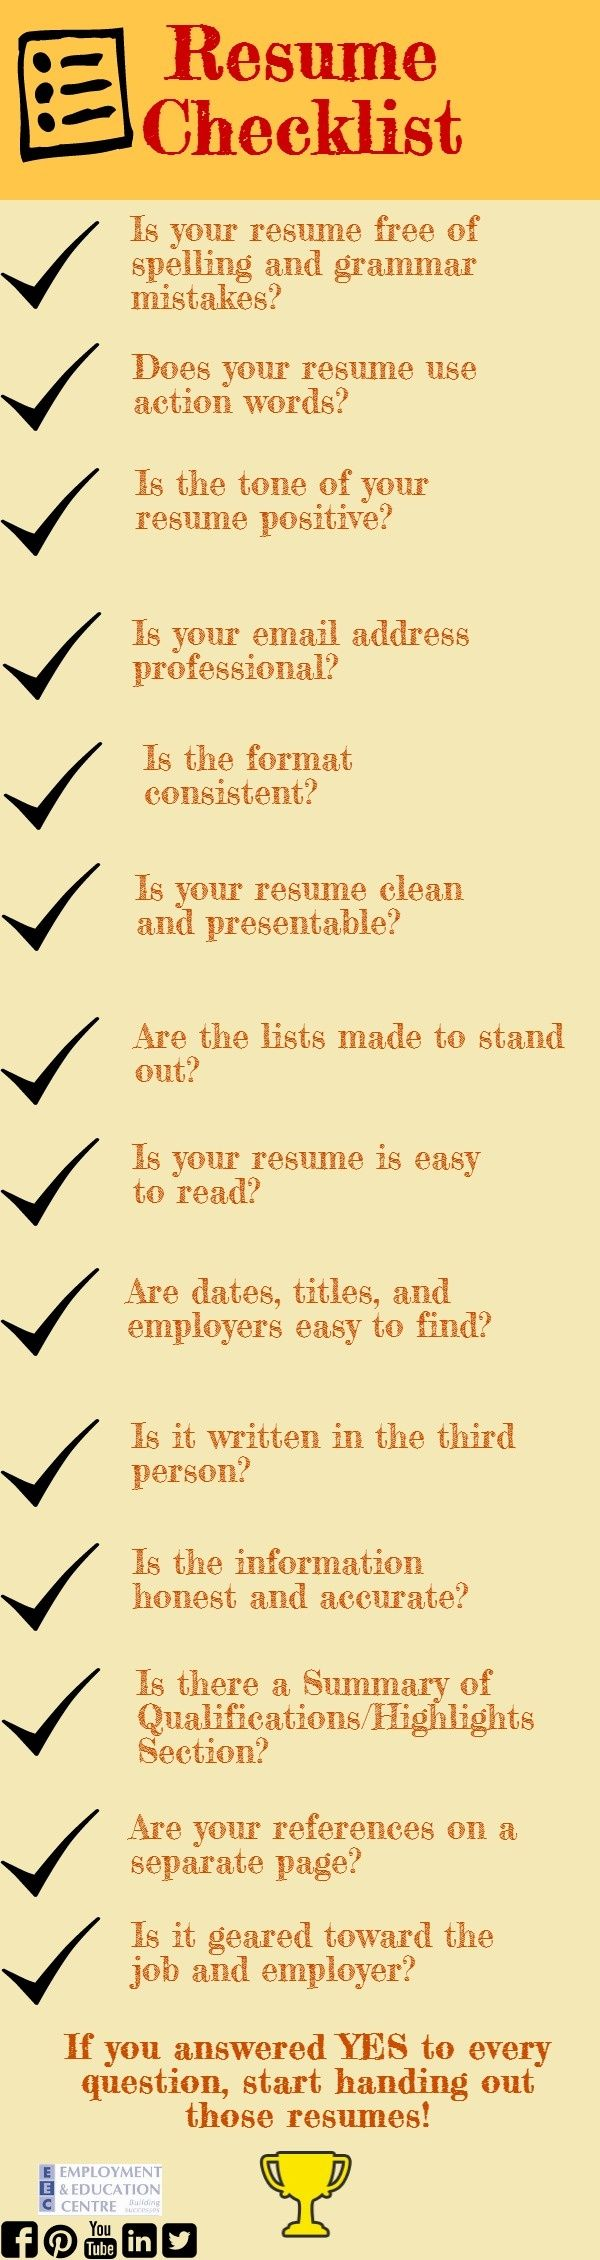 check out this list before you out your resume